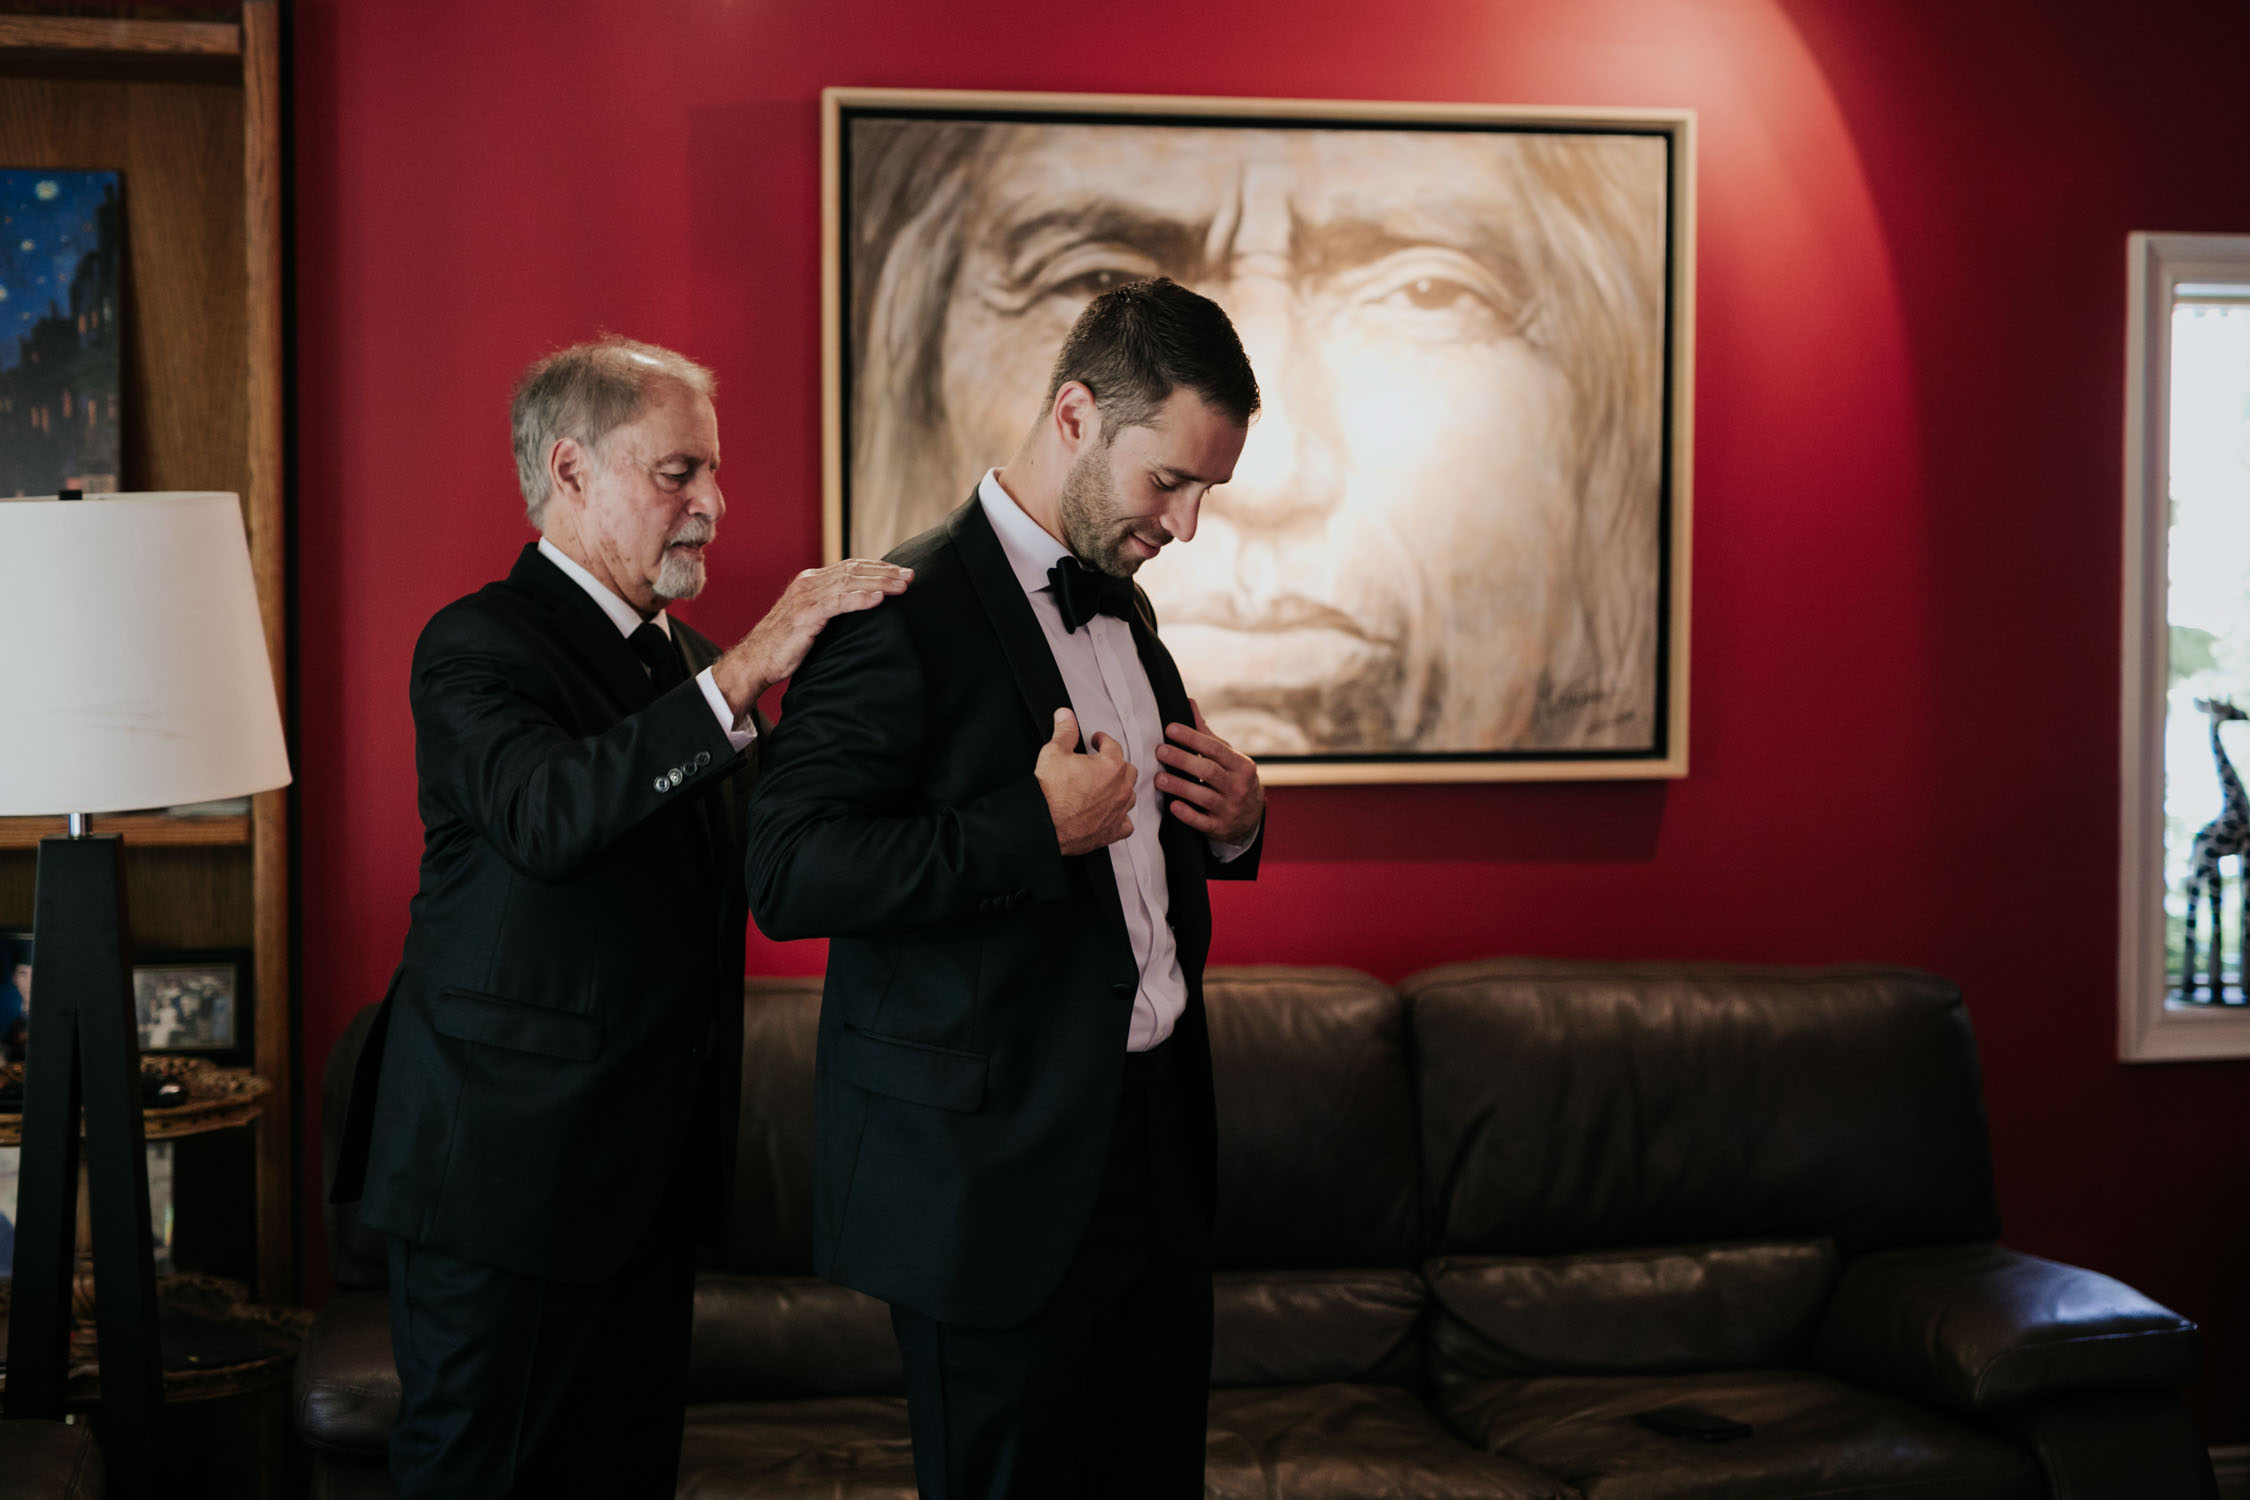 Documentary style getting ready scene of dad helping son put on his wedding jacket before Newmarket Wedding at Madsen's Greenhouse